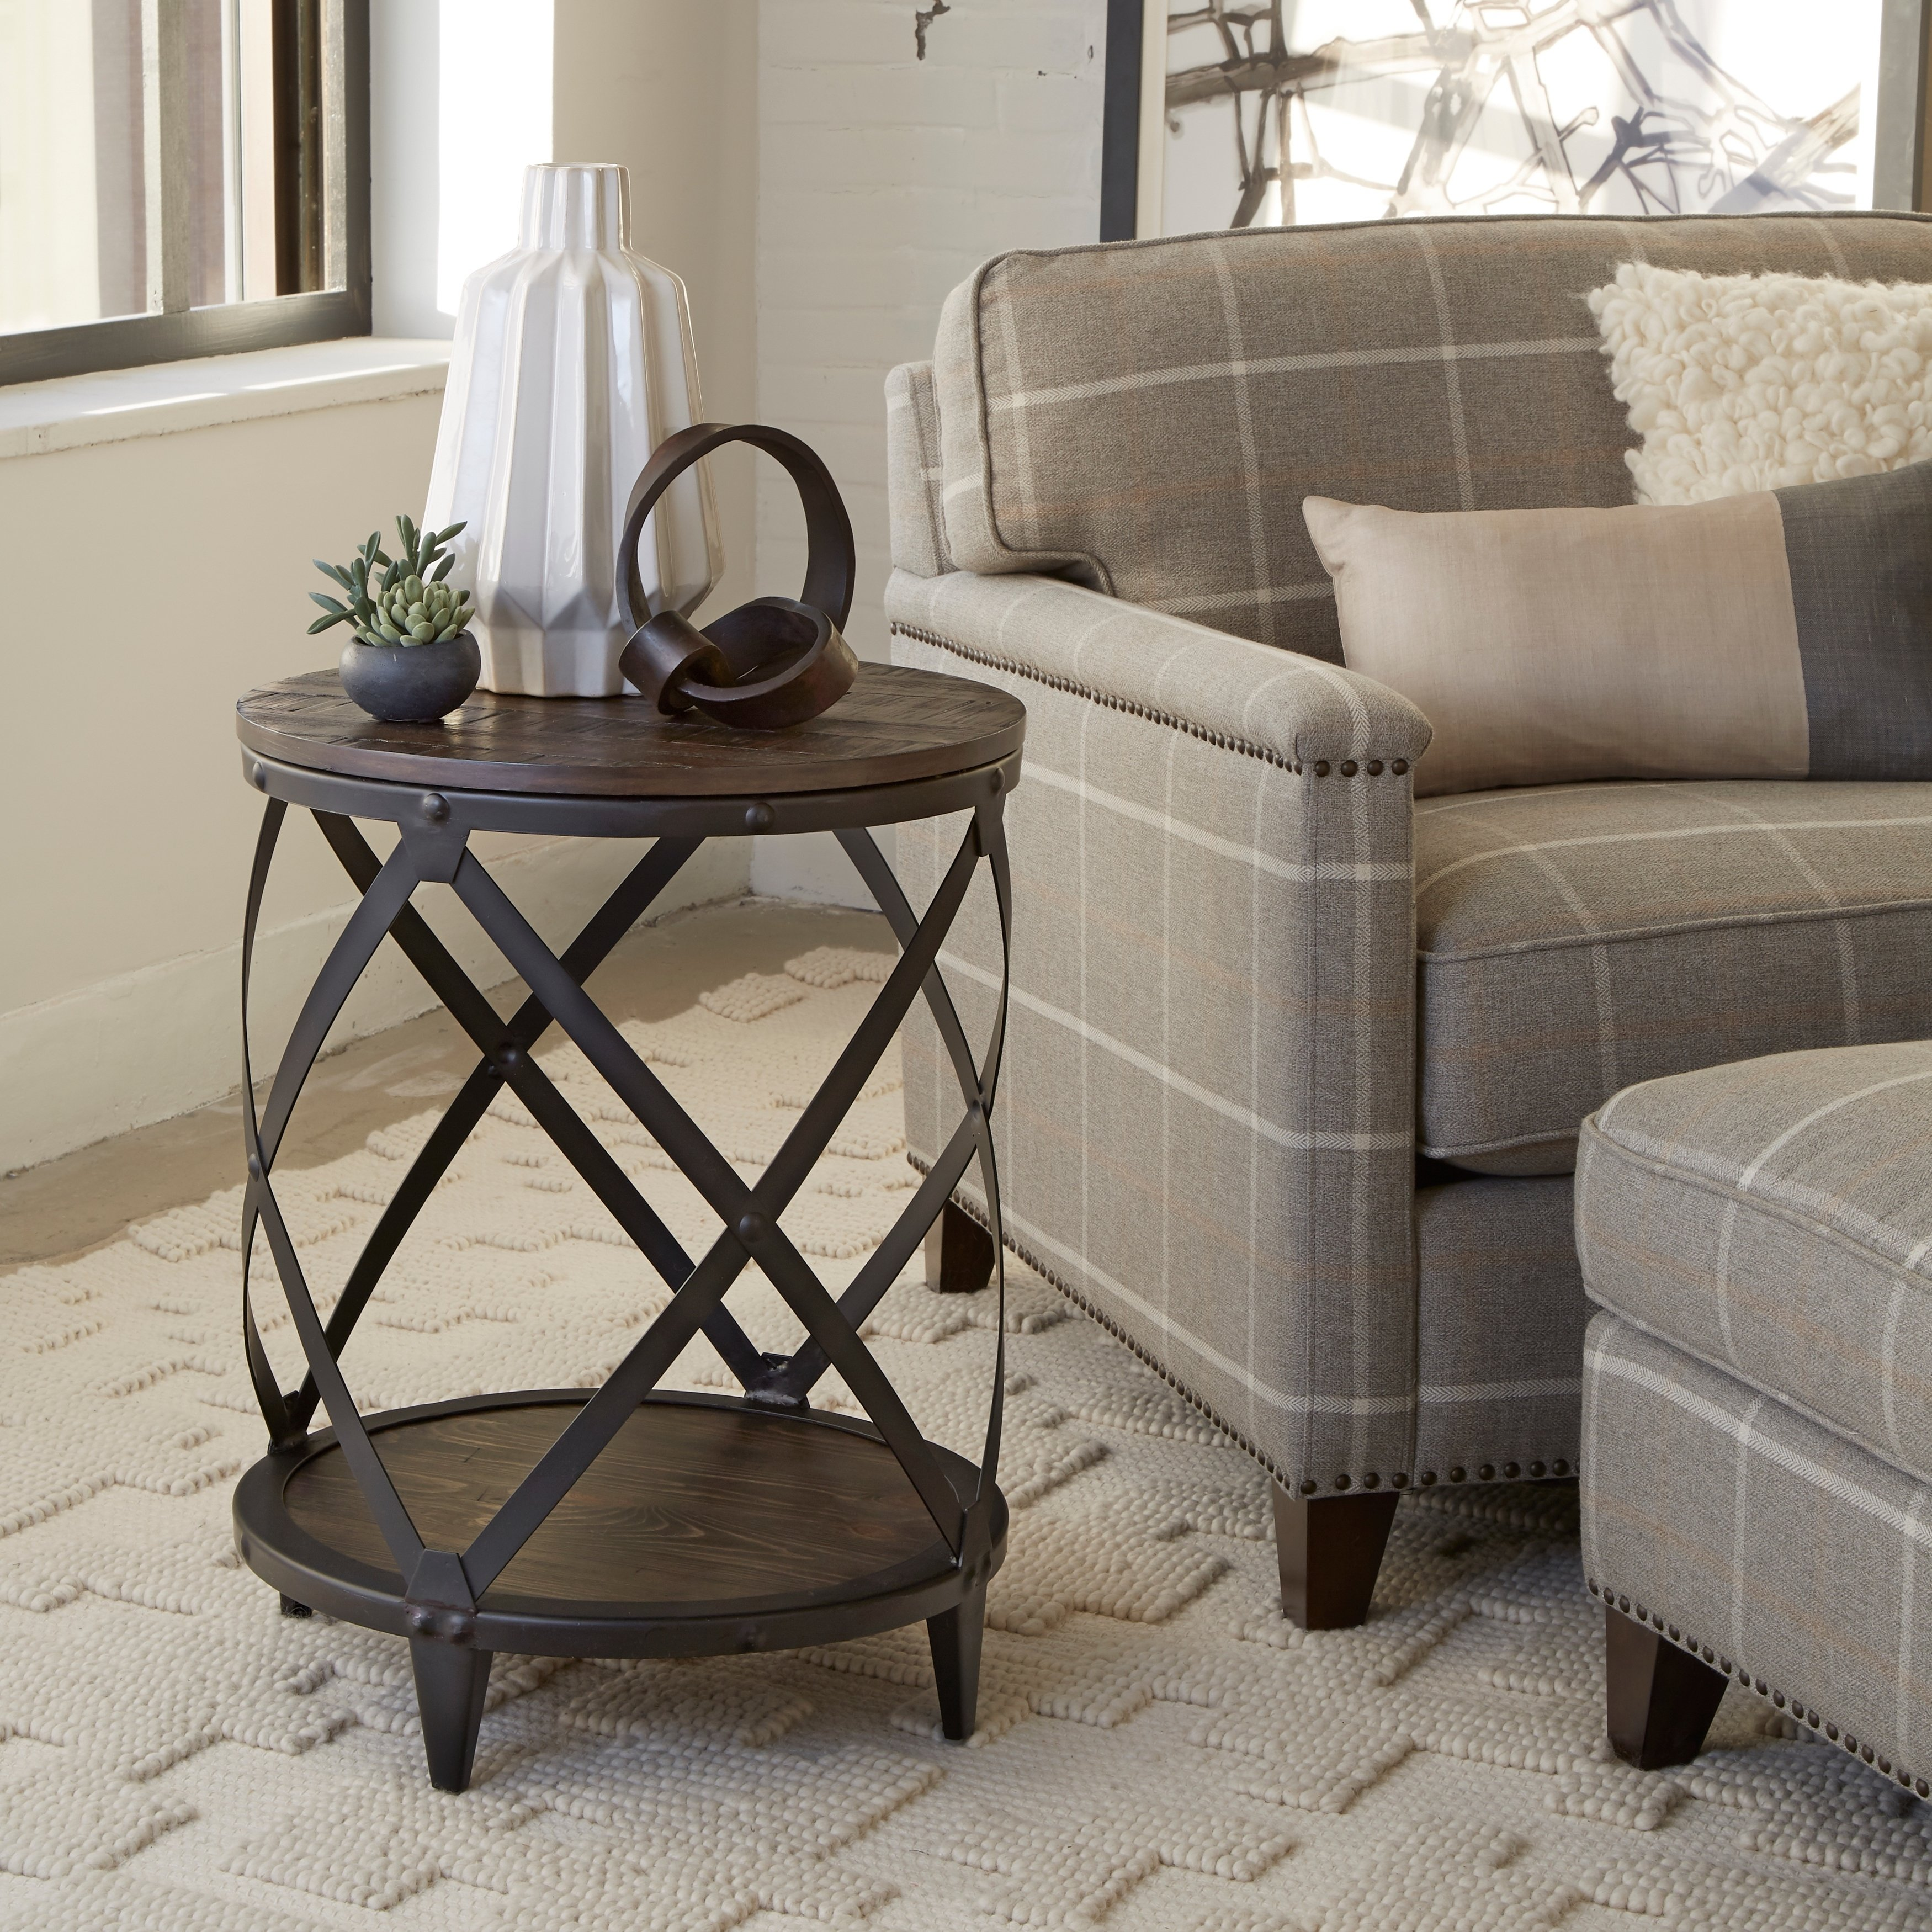 milford industrial weathered charcoal wood and metal accent table behind couch free shipping today monarch hall console dark taupe pier locations trestle size lamps plus lynnwood